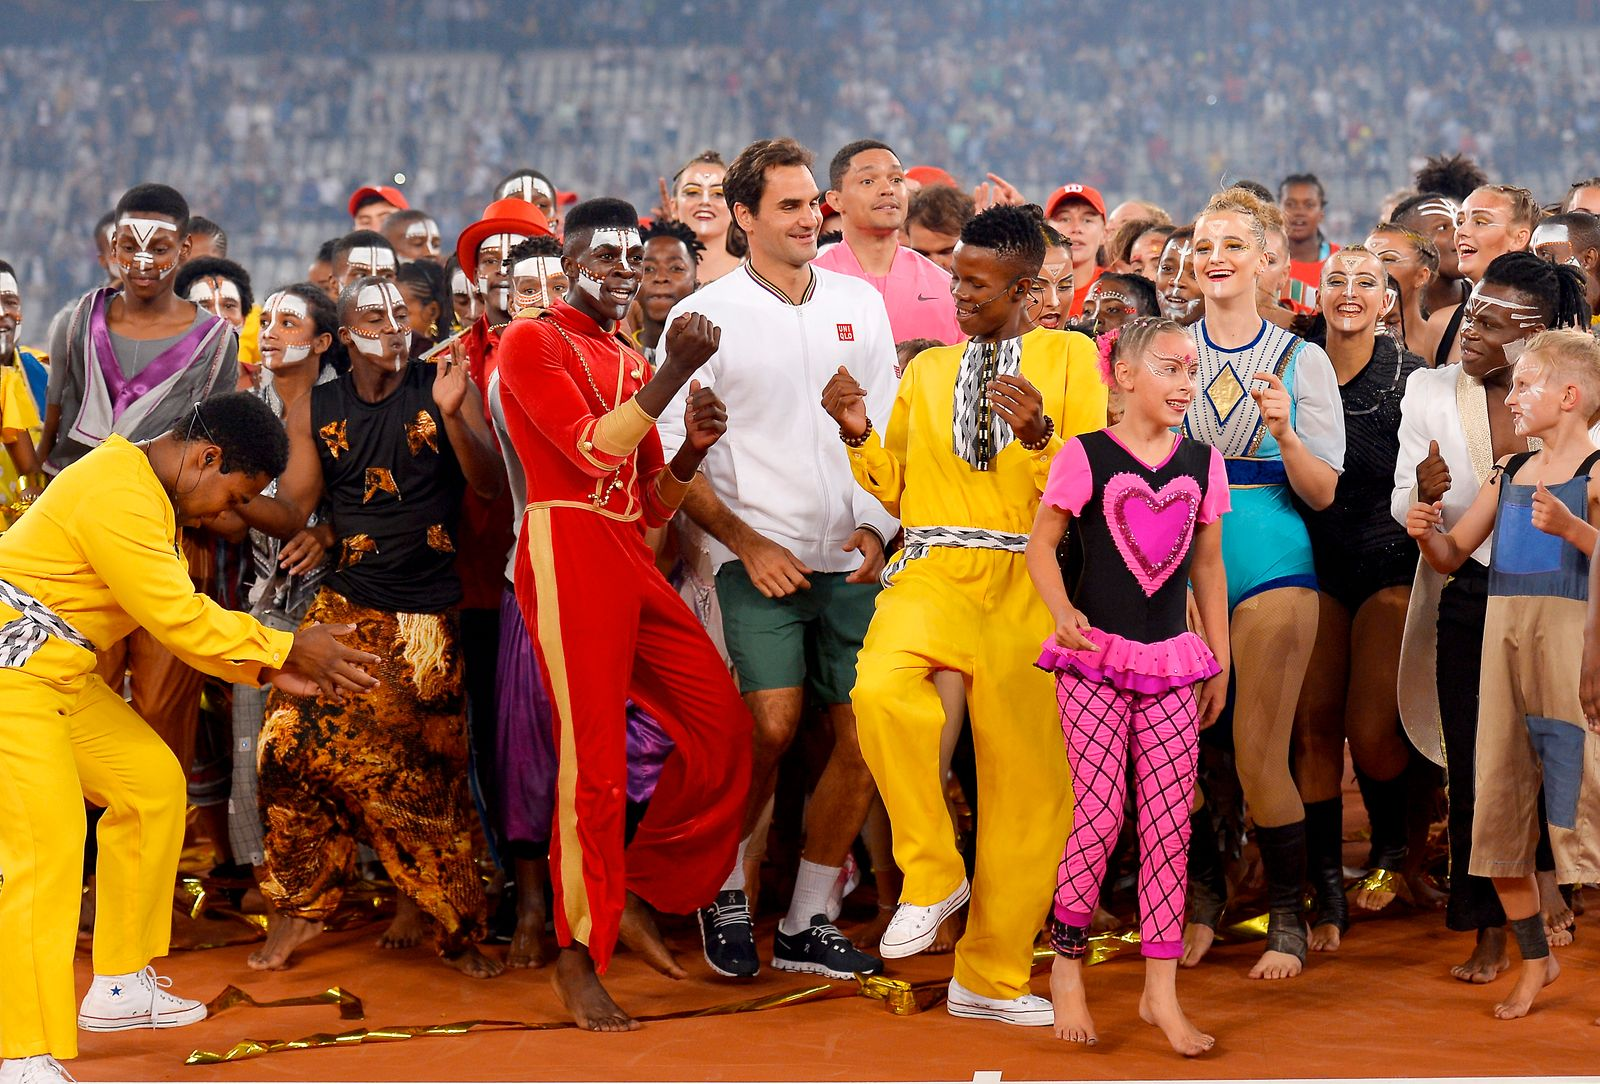 The Match in Africa: Roger Federer v Rafael Nadal